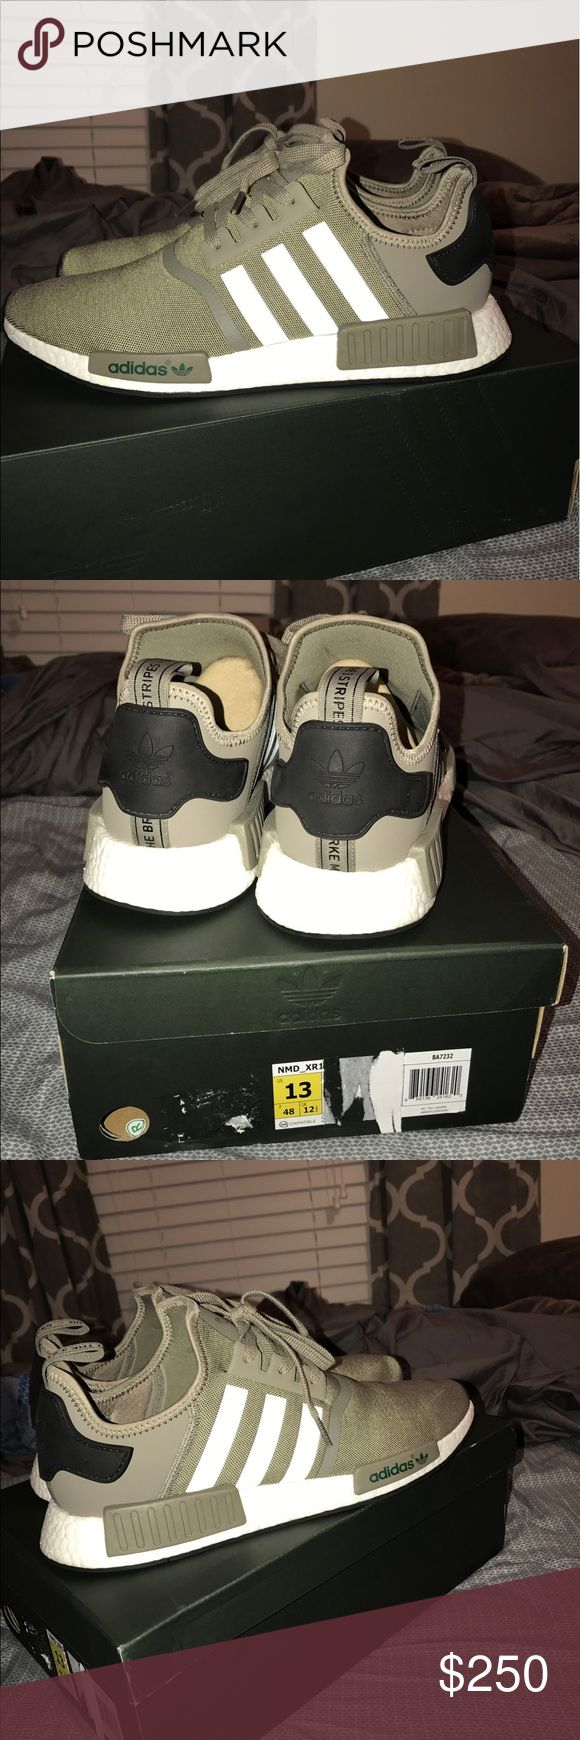 Adidas NMD Olive Green Flawless shoe. Worn out once. Great condition! CANT BUY IN STORES or ONLINE. Willing to negotiate, But only for a far price. Adidas Shoes Sneakers